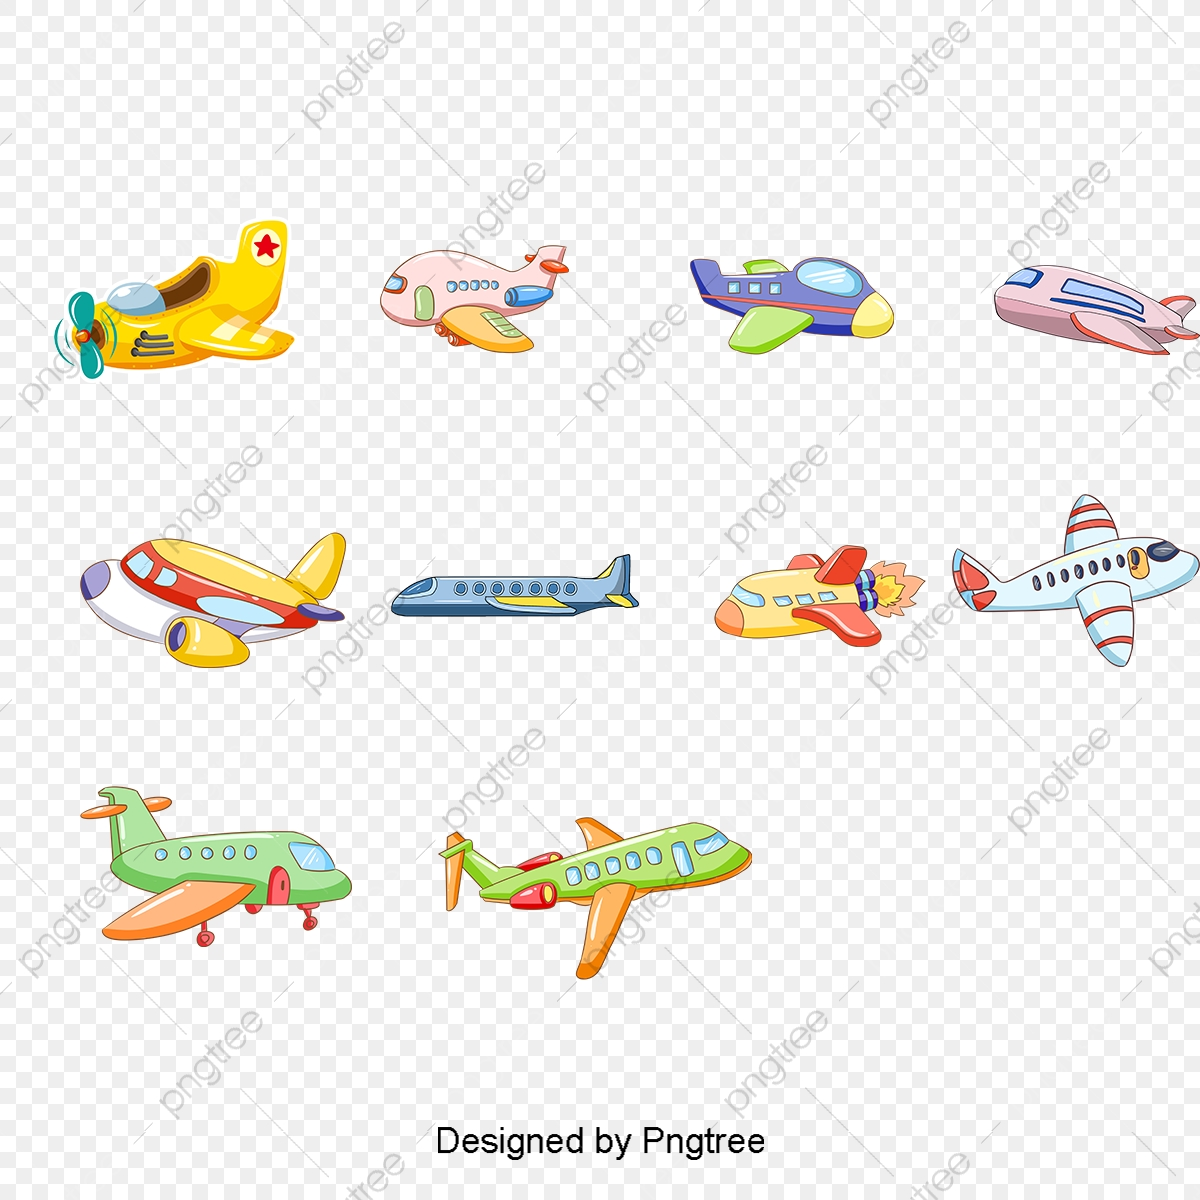 Vector Cartoon Toy Airplane Cartoon Airplane Aircraft Toys